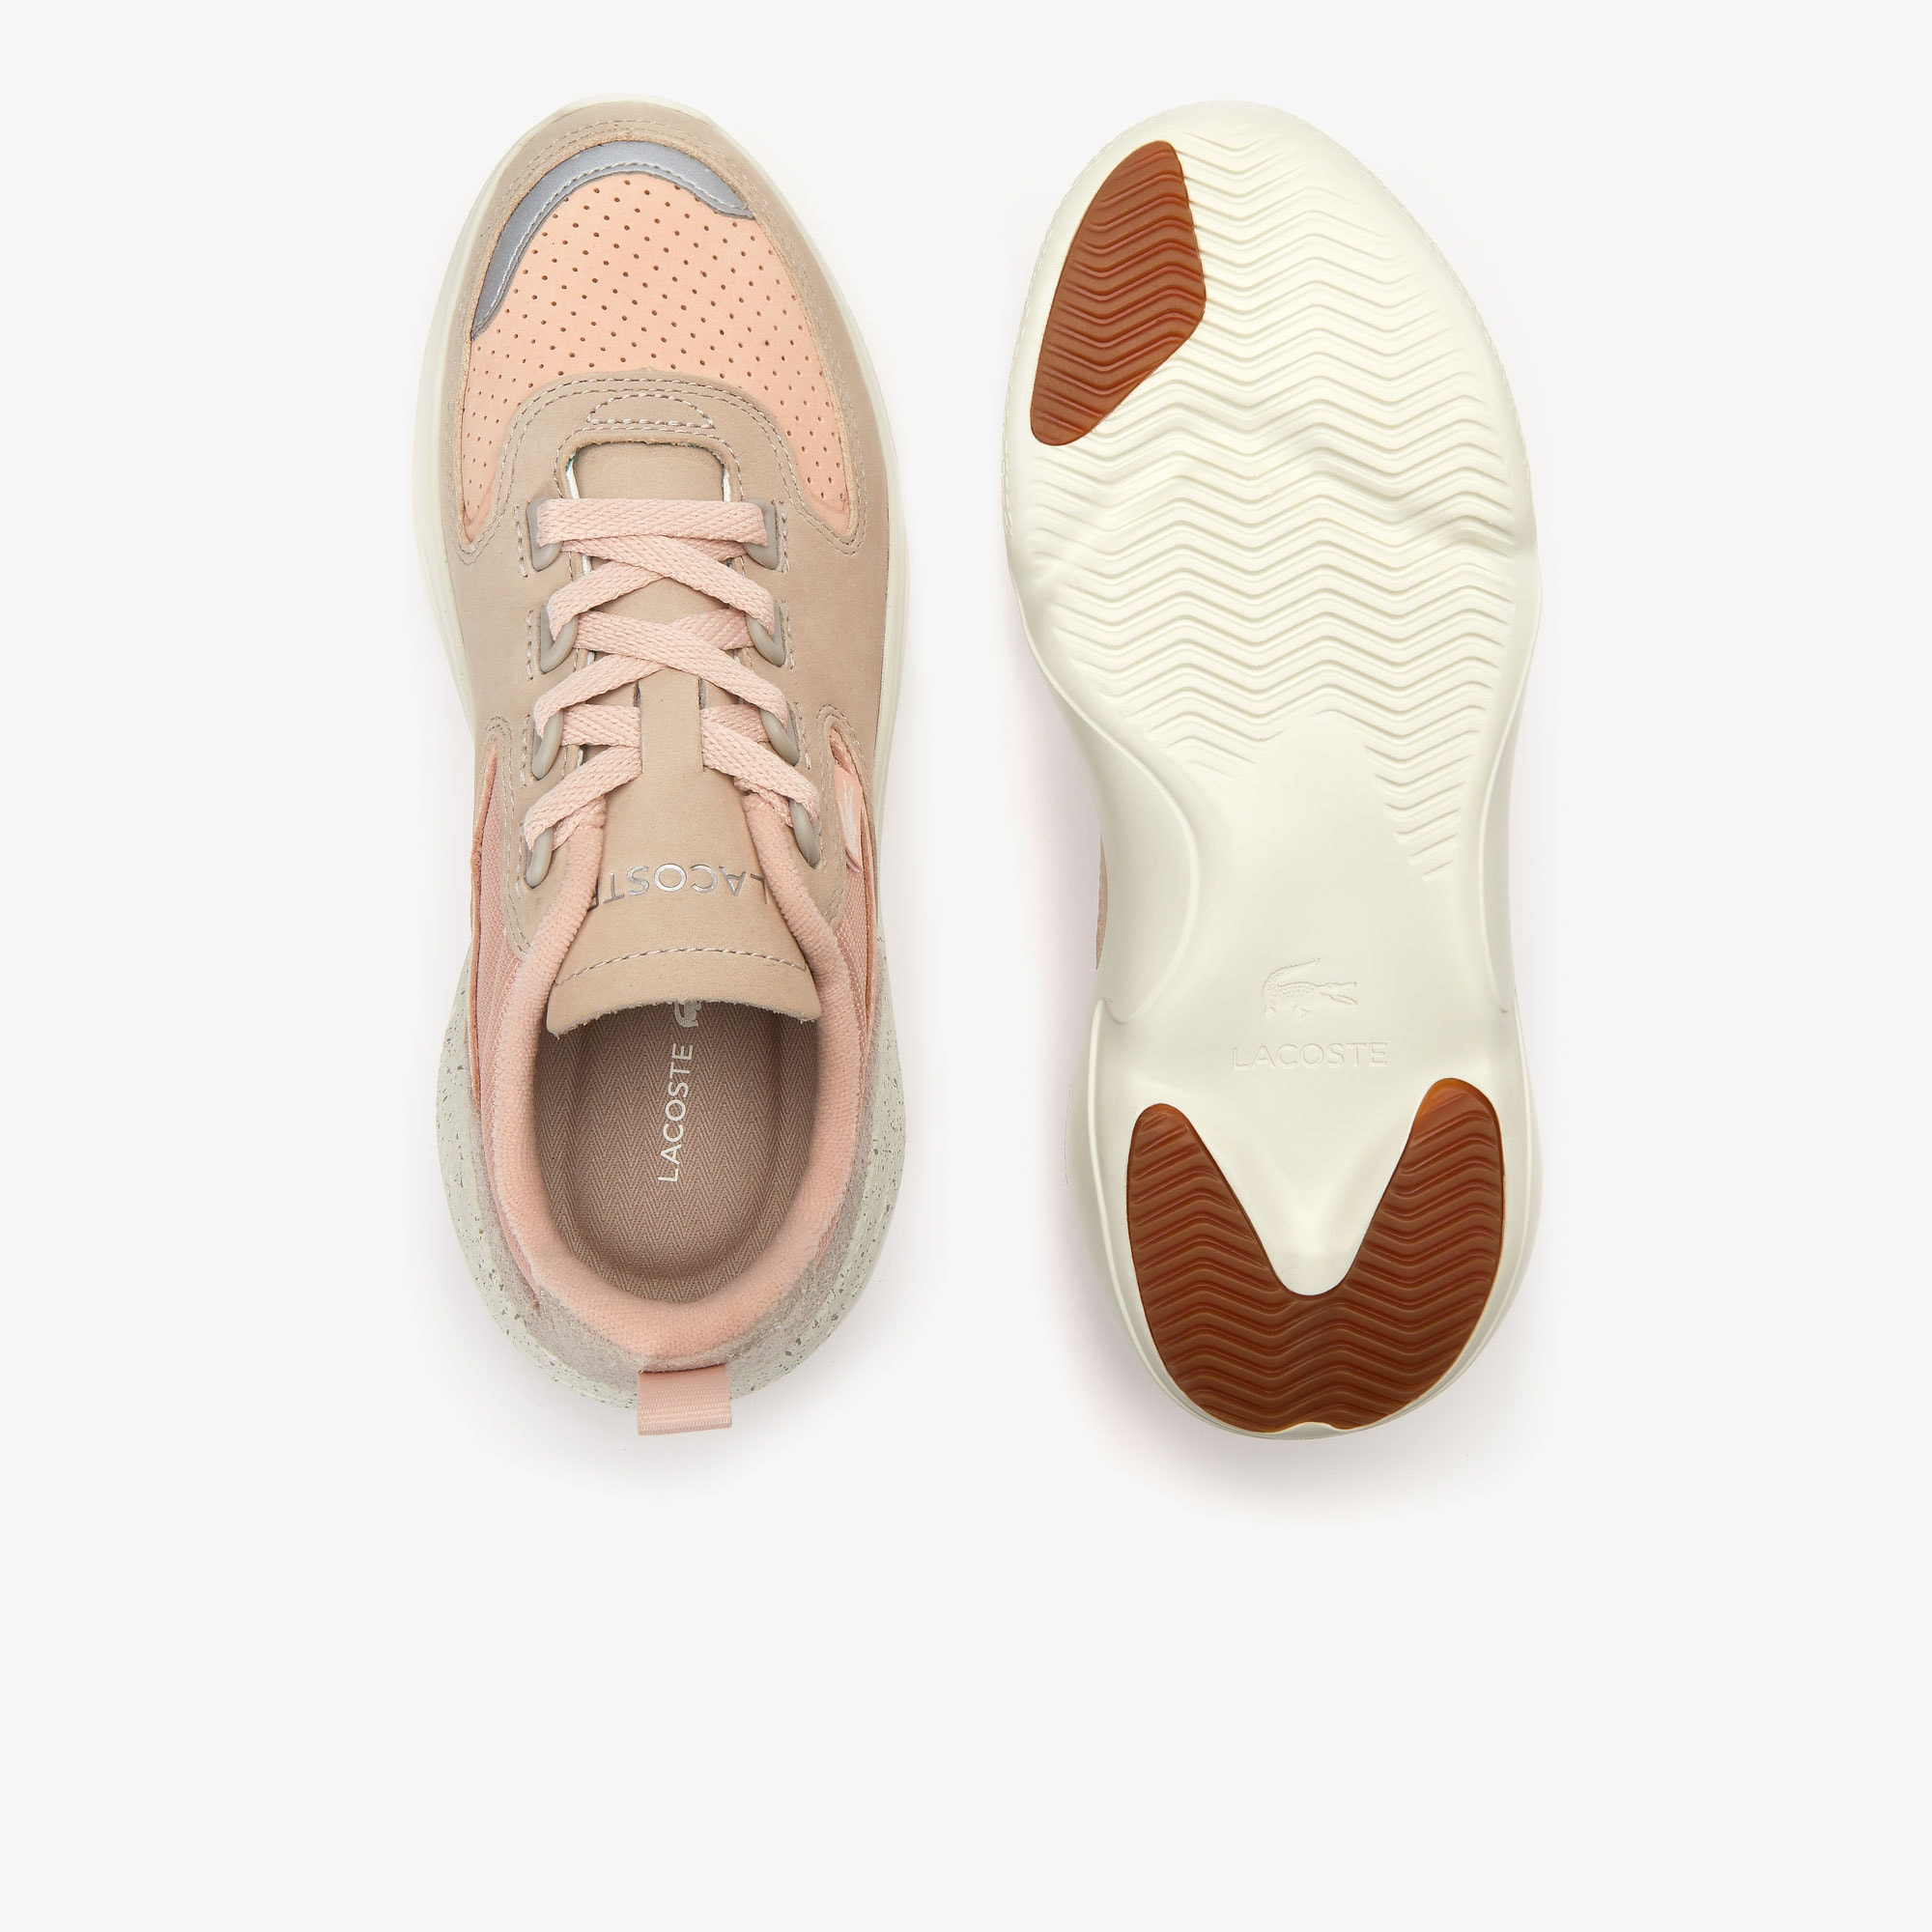 Sneakers da donna in pelle e tessuto Wildcard